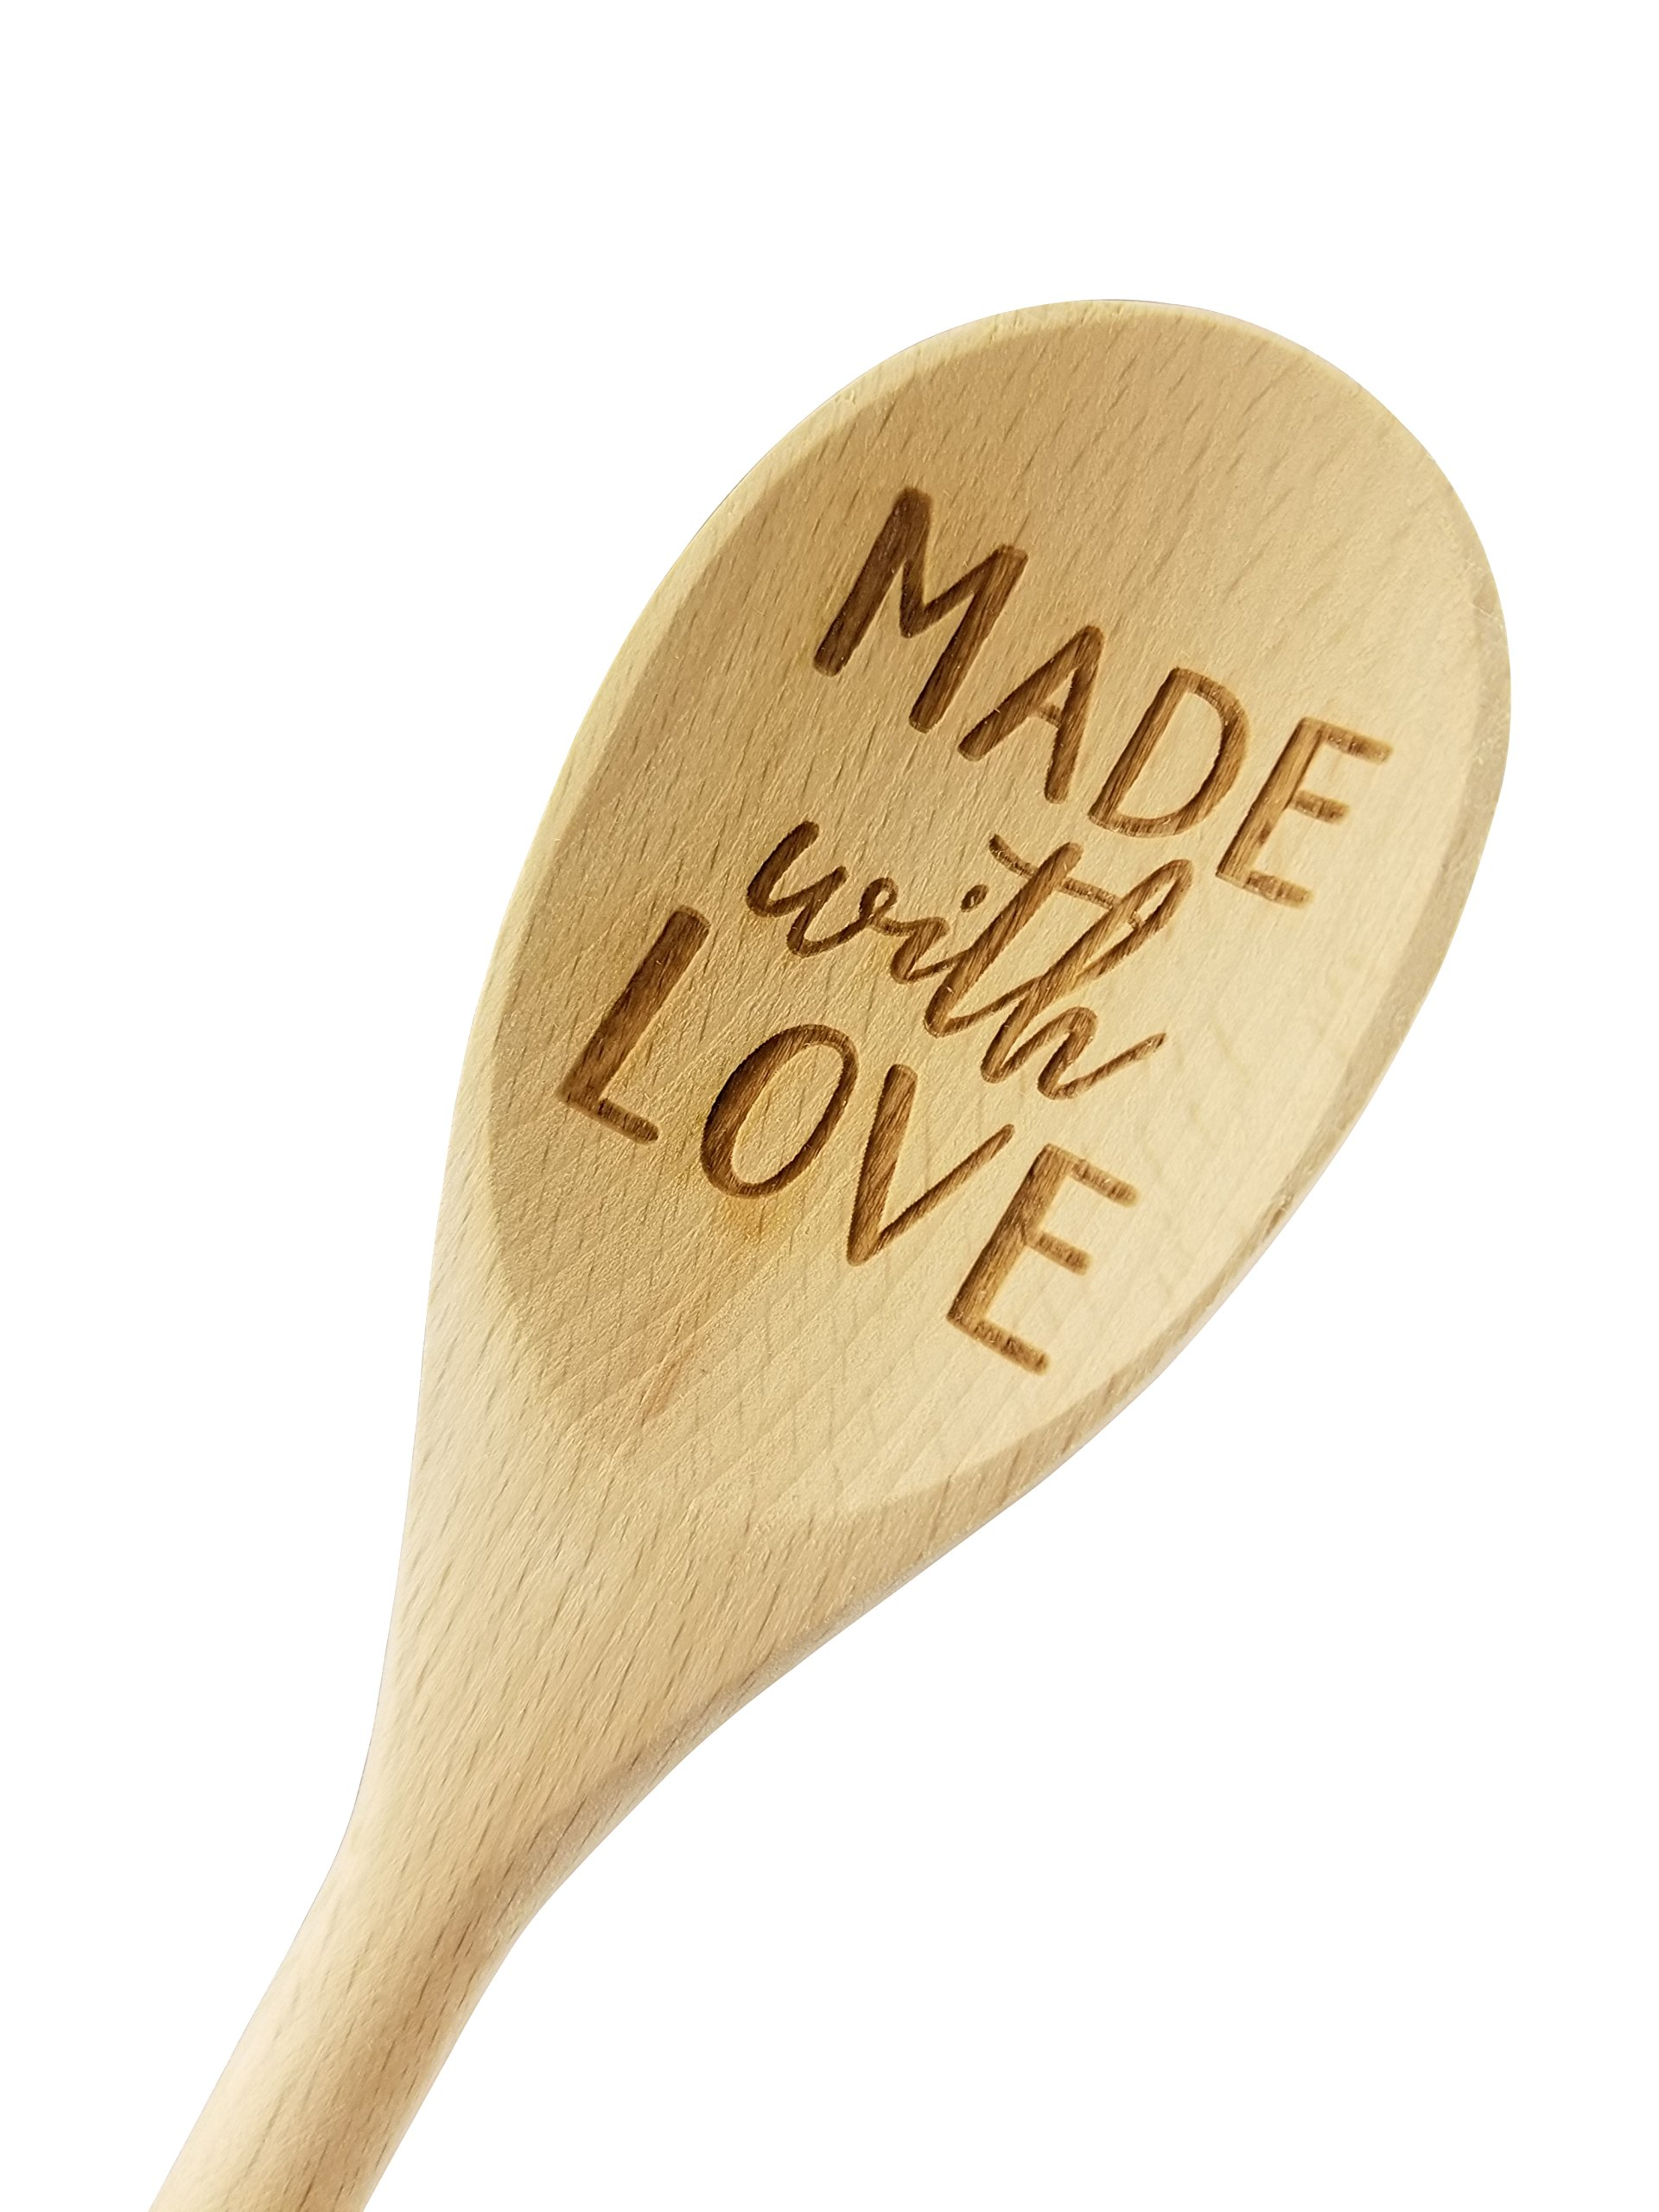 Engraved 14in Made With Love Wood Spoon Gift (1 Spoon)